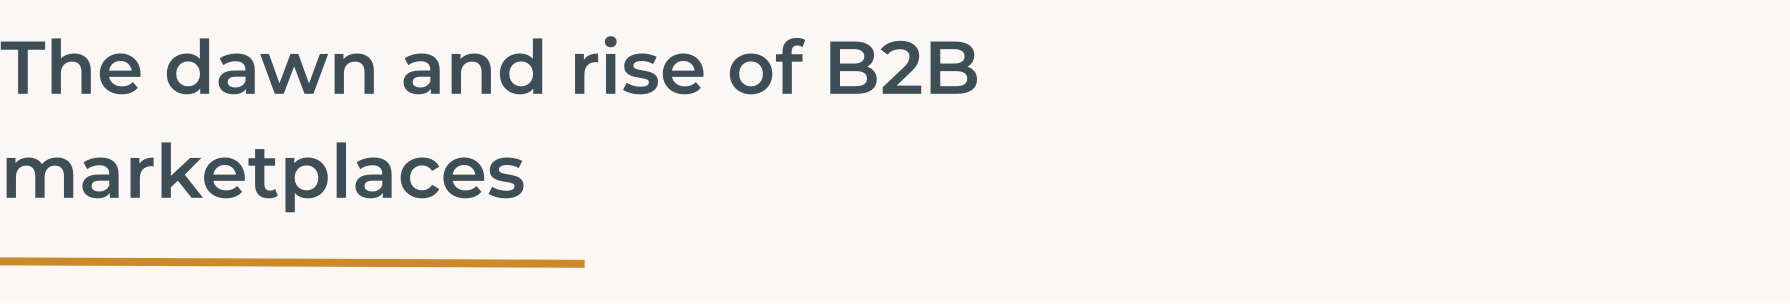 The dawn and rise of B2B marketplaces